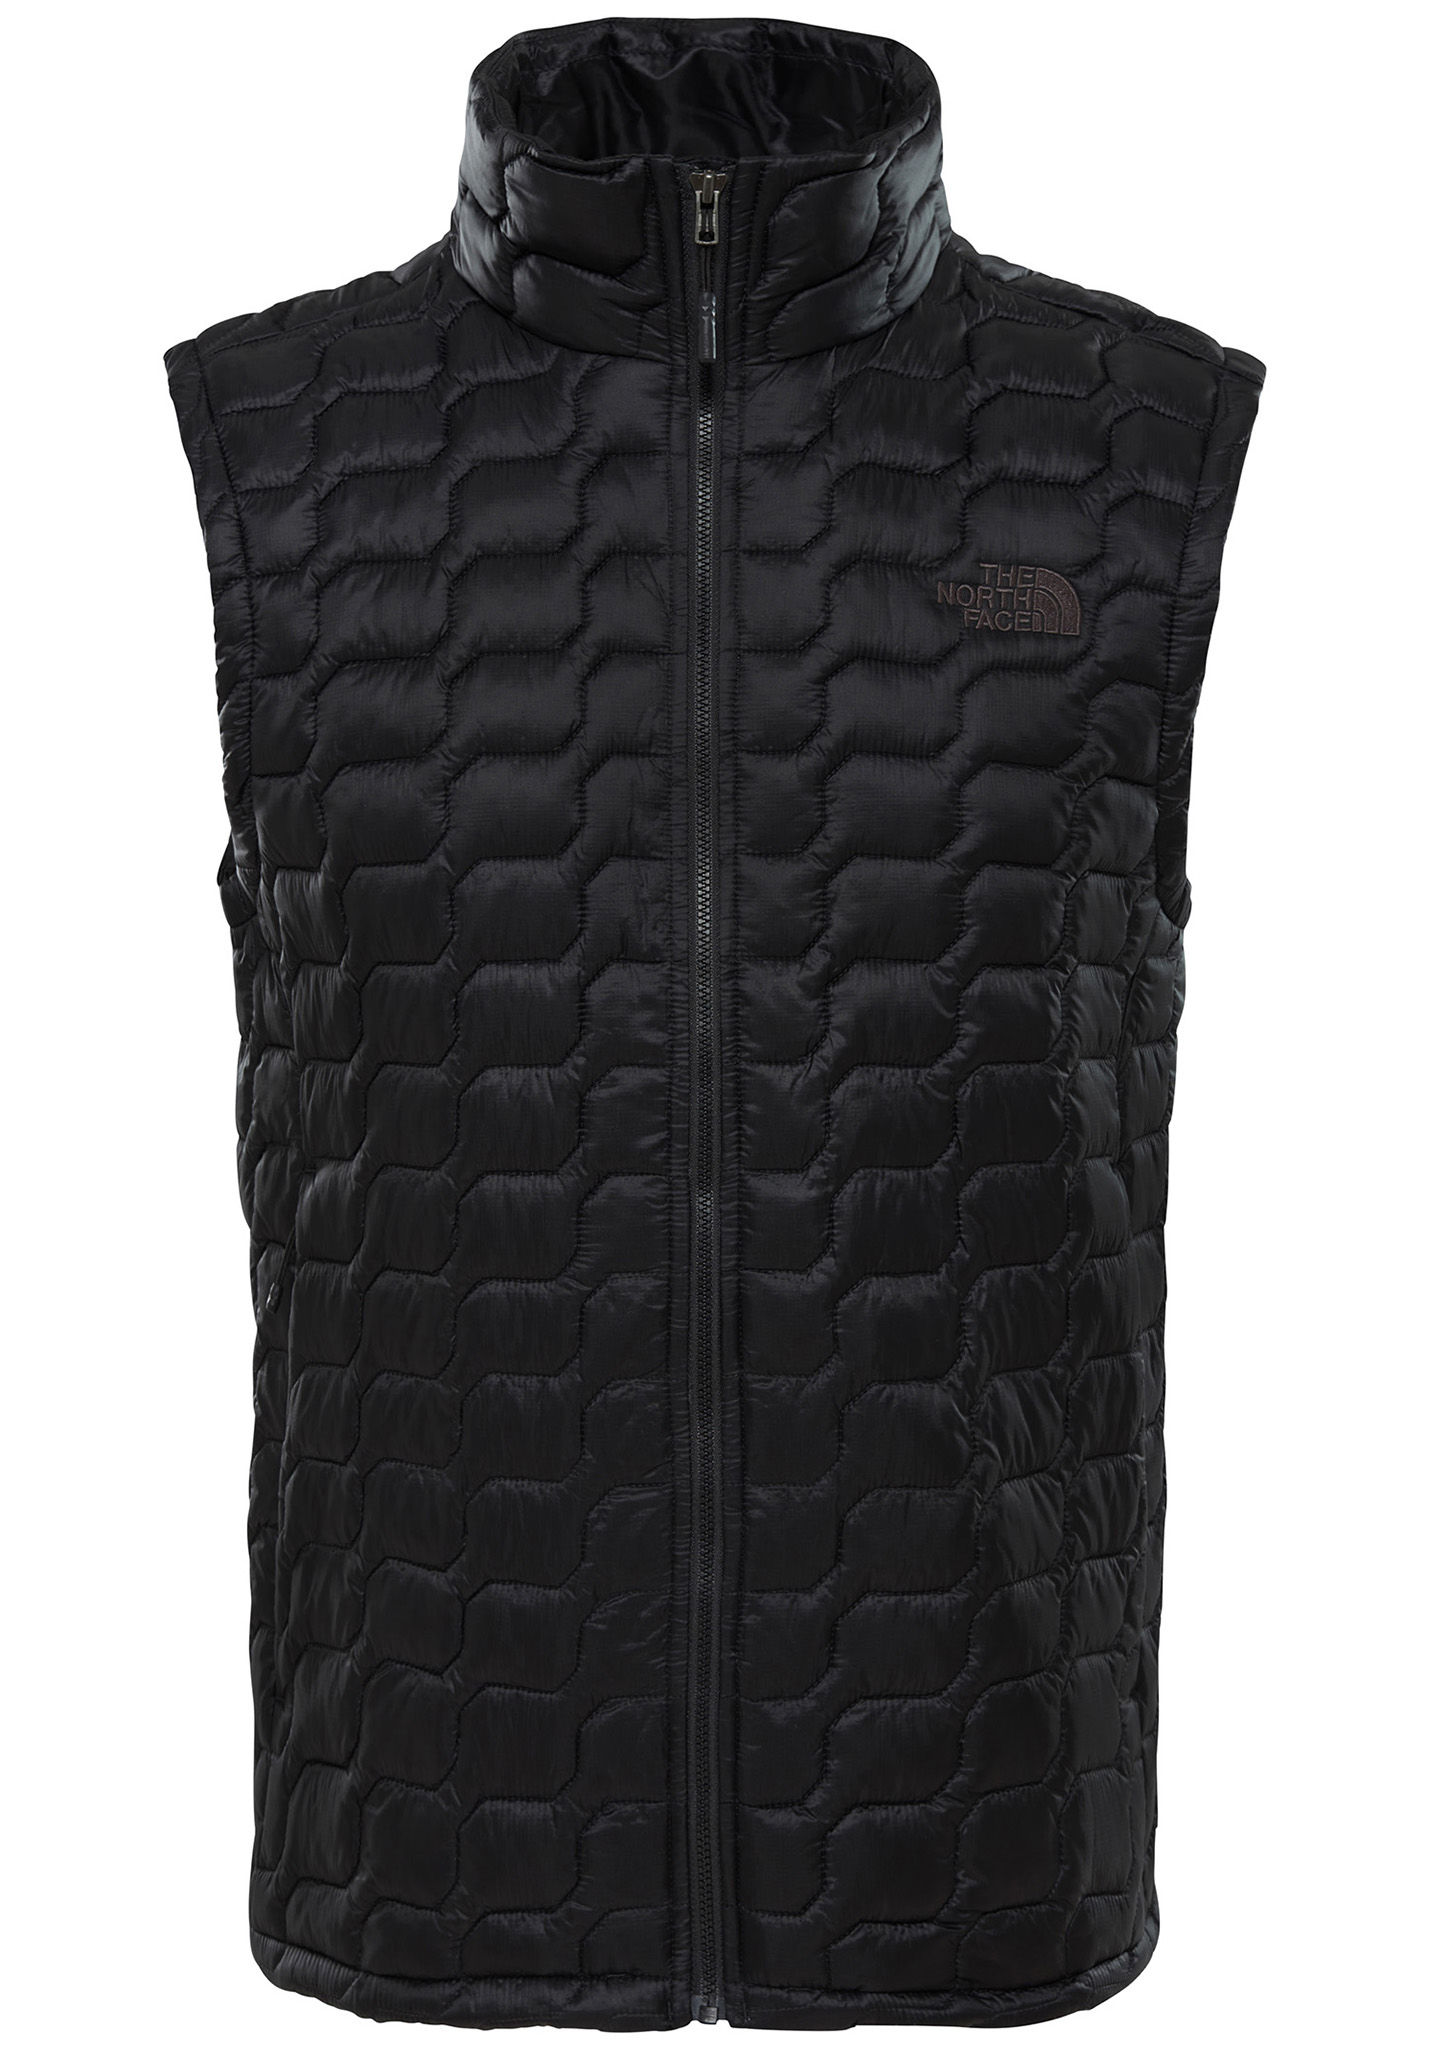 3a02292c51d the-north-face-thermoball-gilet-hommes-noirs.jpg